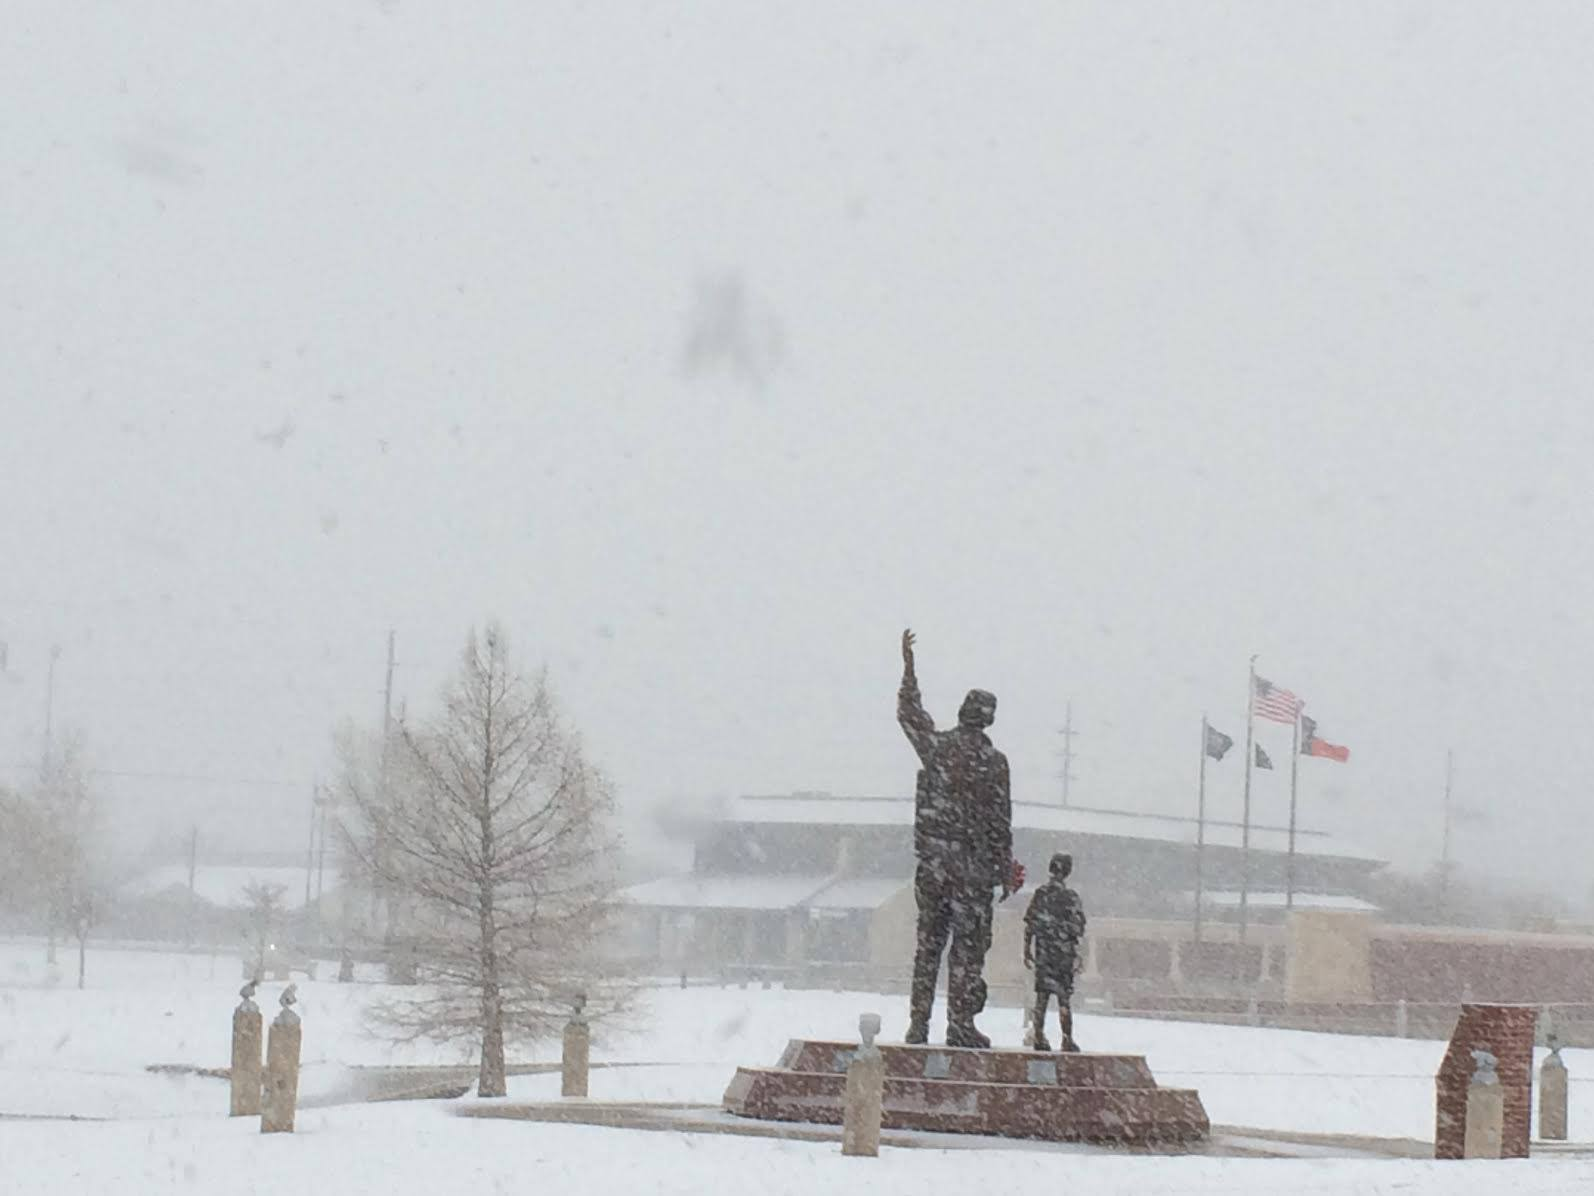 Snow falling at Henry Huneke Park in south Lubbock on the morning of December 27th